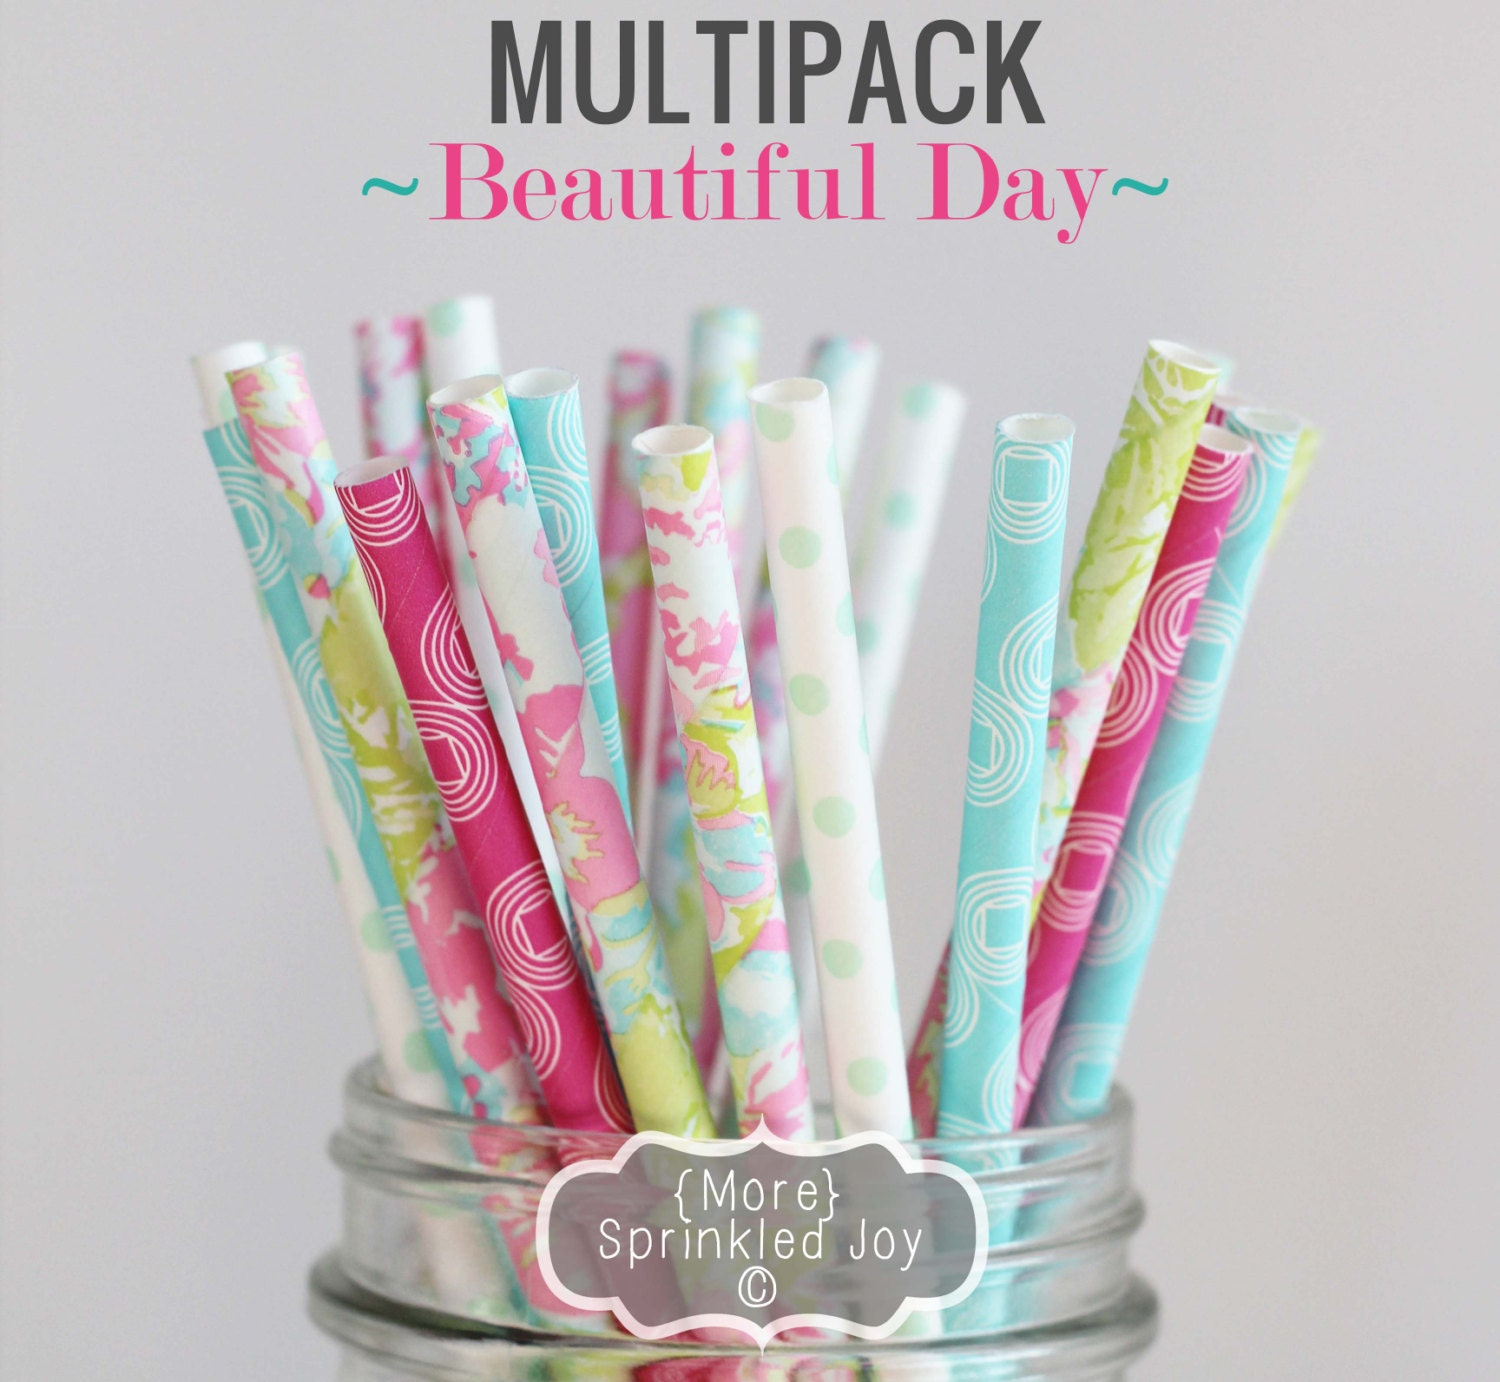 BEAUTIFUL DAY Chic Straw Multipack, Floral, Dots, Vintage, 25 Straws, Pastel, Easter, Green, Pink, Aqua - MoreSprinkledJoy